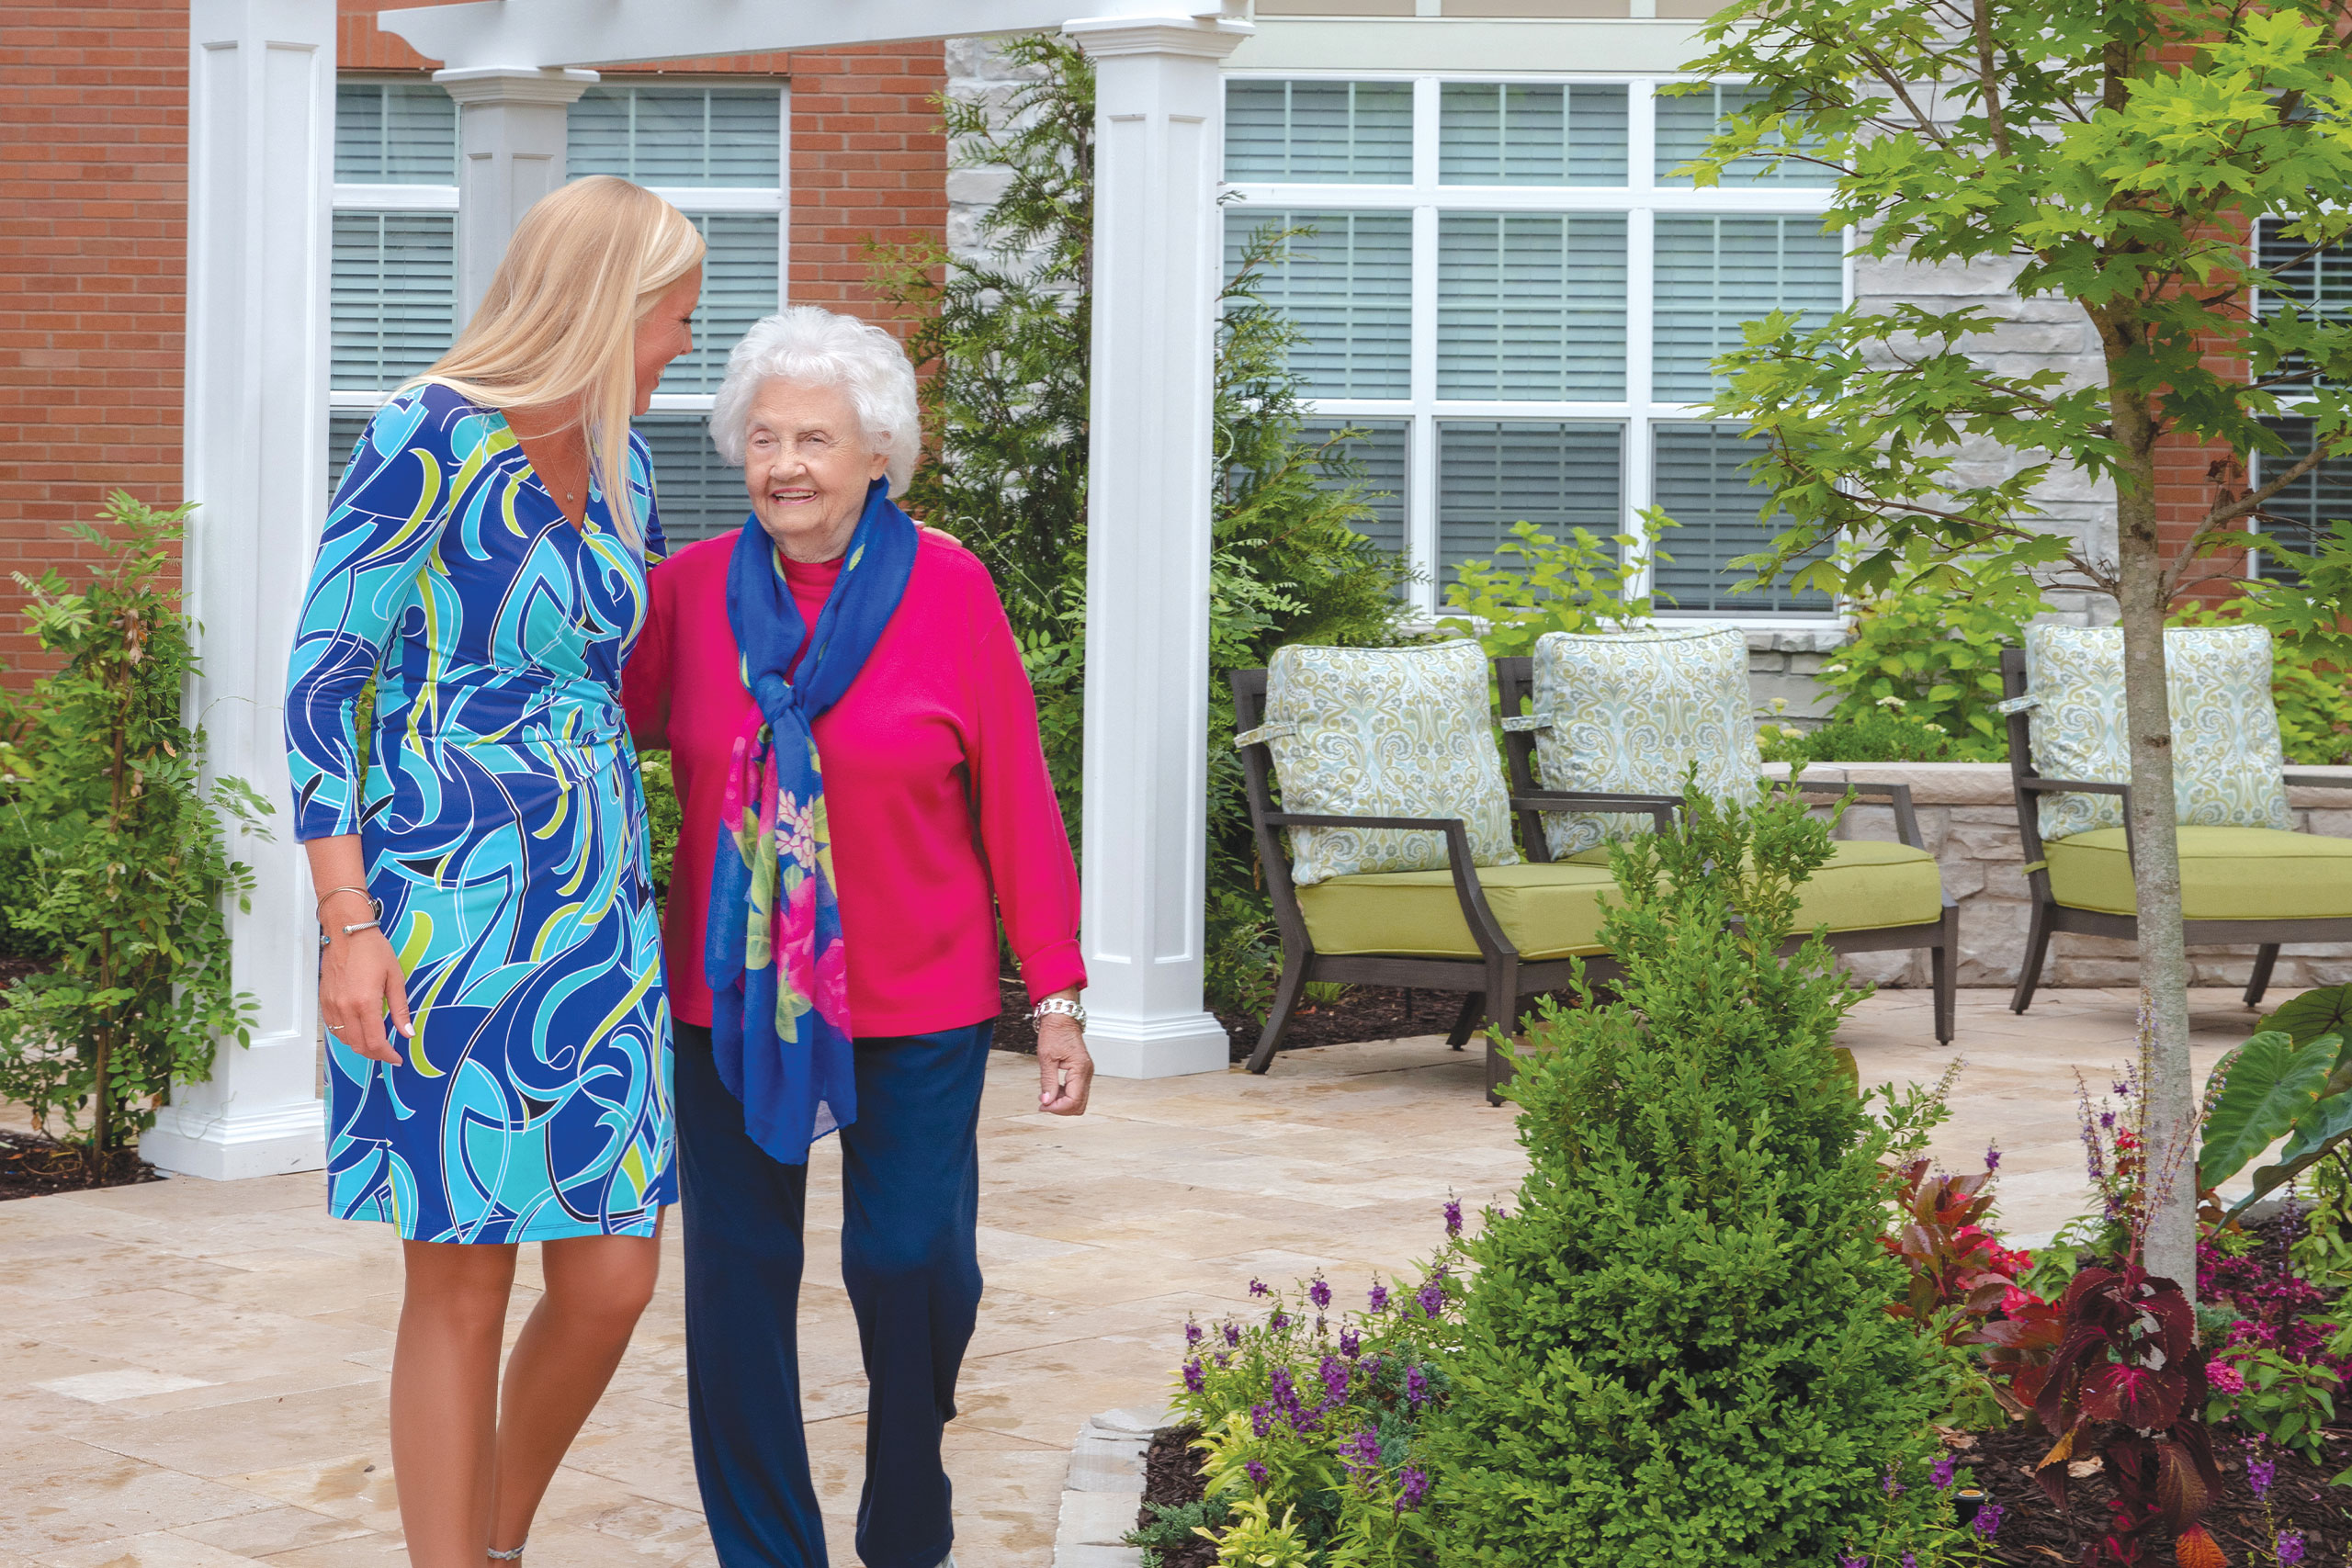 Assisted Living and Memory Care Executive Director and resident walking in outdoor gardens.